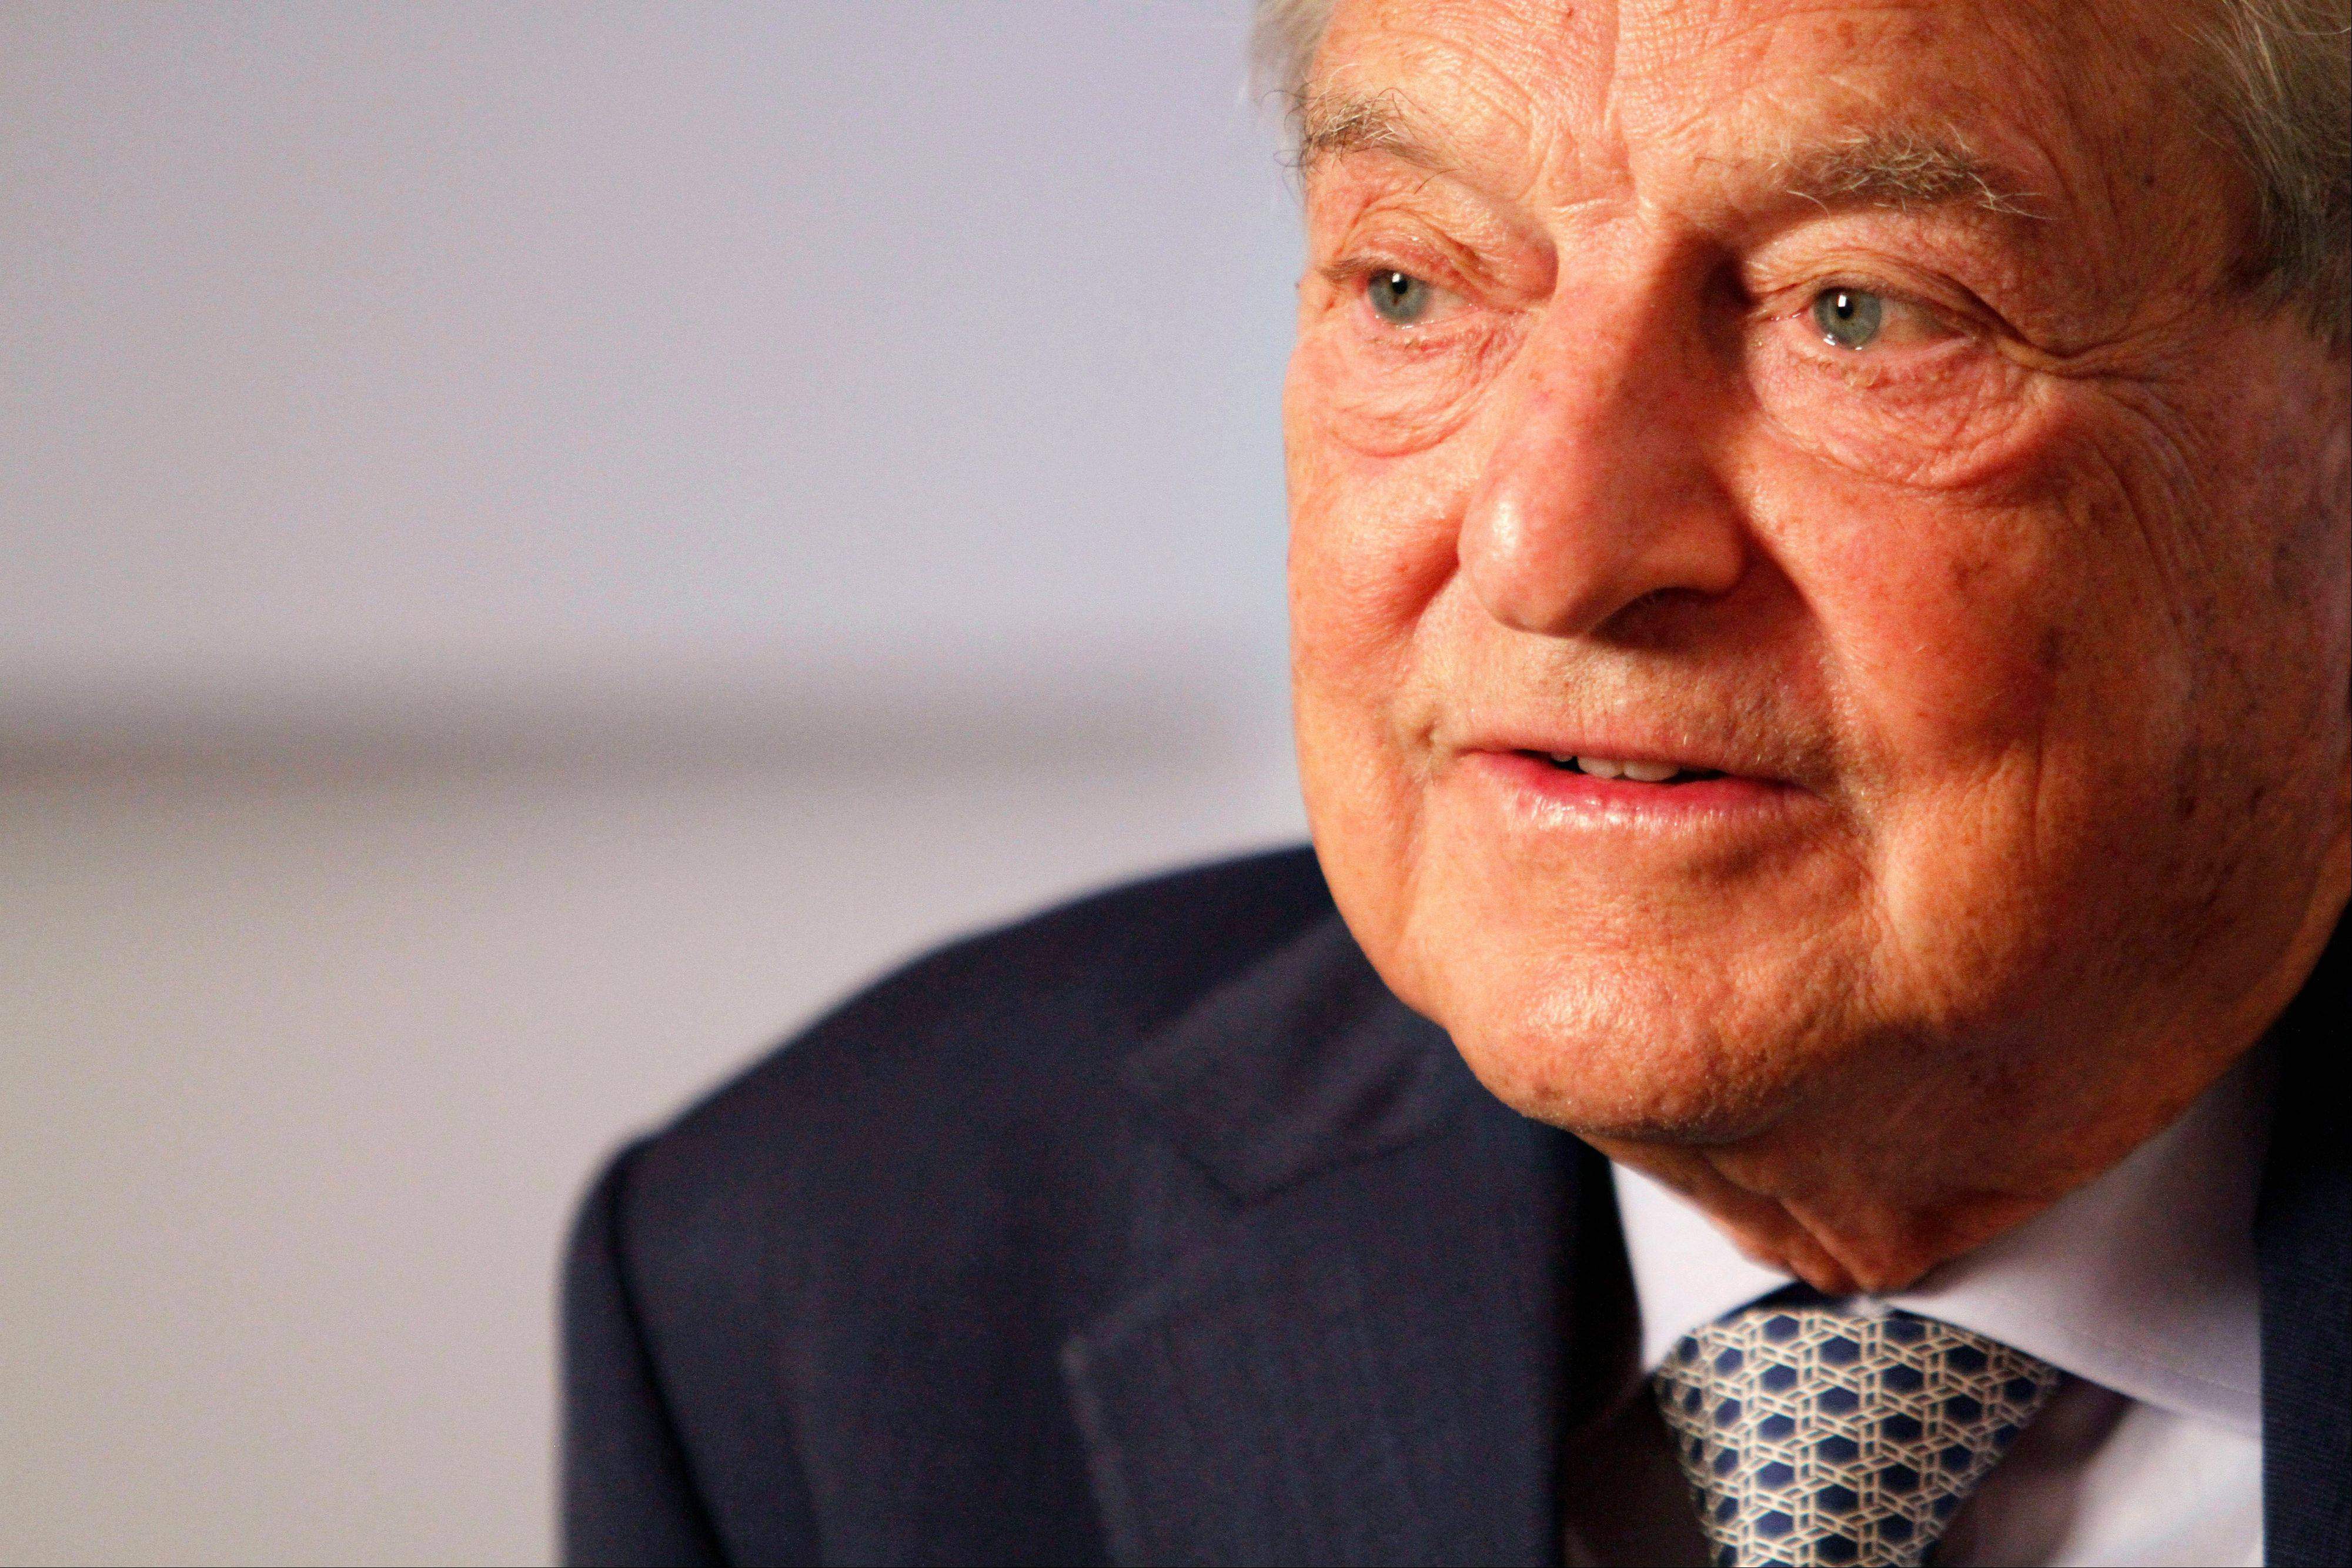 Billionaire financier George Soros announced Monday, Aug. 21, 2012, that he is taking a minority stake in soccer club Manchester United. Soros disclosed in a regulatory filing on Monday that he owns 7.85 percent of Manchester United's Class A shares.